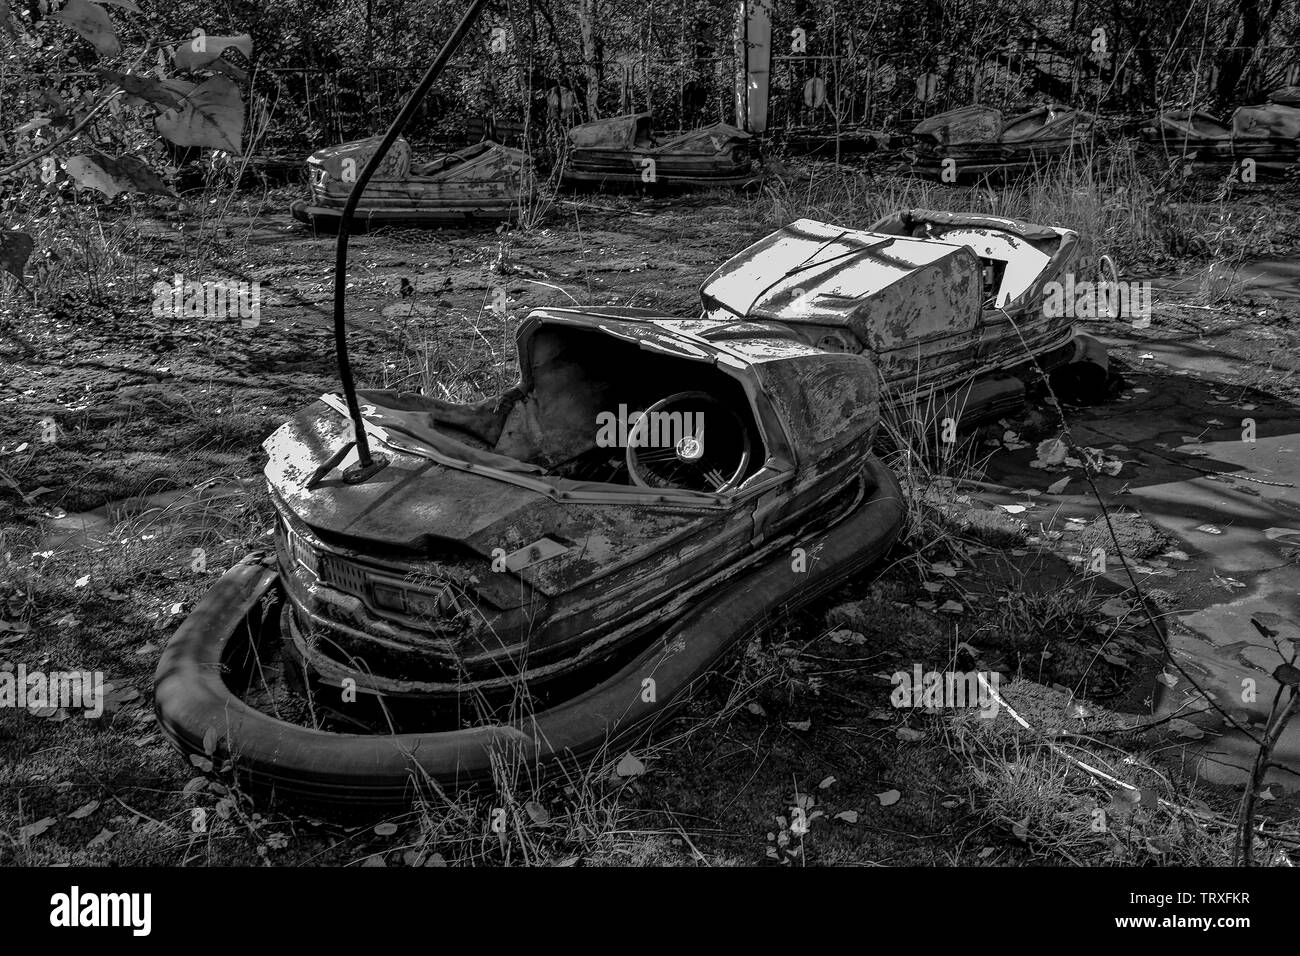 Chernobyl: Ukraine. Bumper. Bumper was taken in the fairground at Pripryat ( or Pryp'yat) the Atomic City built next to Chernobyl. The 50,000 inhabitants had sports and swimming facilities, scools and a sopermarket unlike most cities in the Soviet Union. The funfair was due to open for Mat Day. But the nuclear accident happened just 3 days before. It was never used. This image was a finalist in the 2015 Environmental Photographer of the Year competition in 2015, and was part of my 2014 'Unsustainable Cities?' exhibition at the Royal Geographical Society in London. - Stock Image